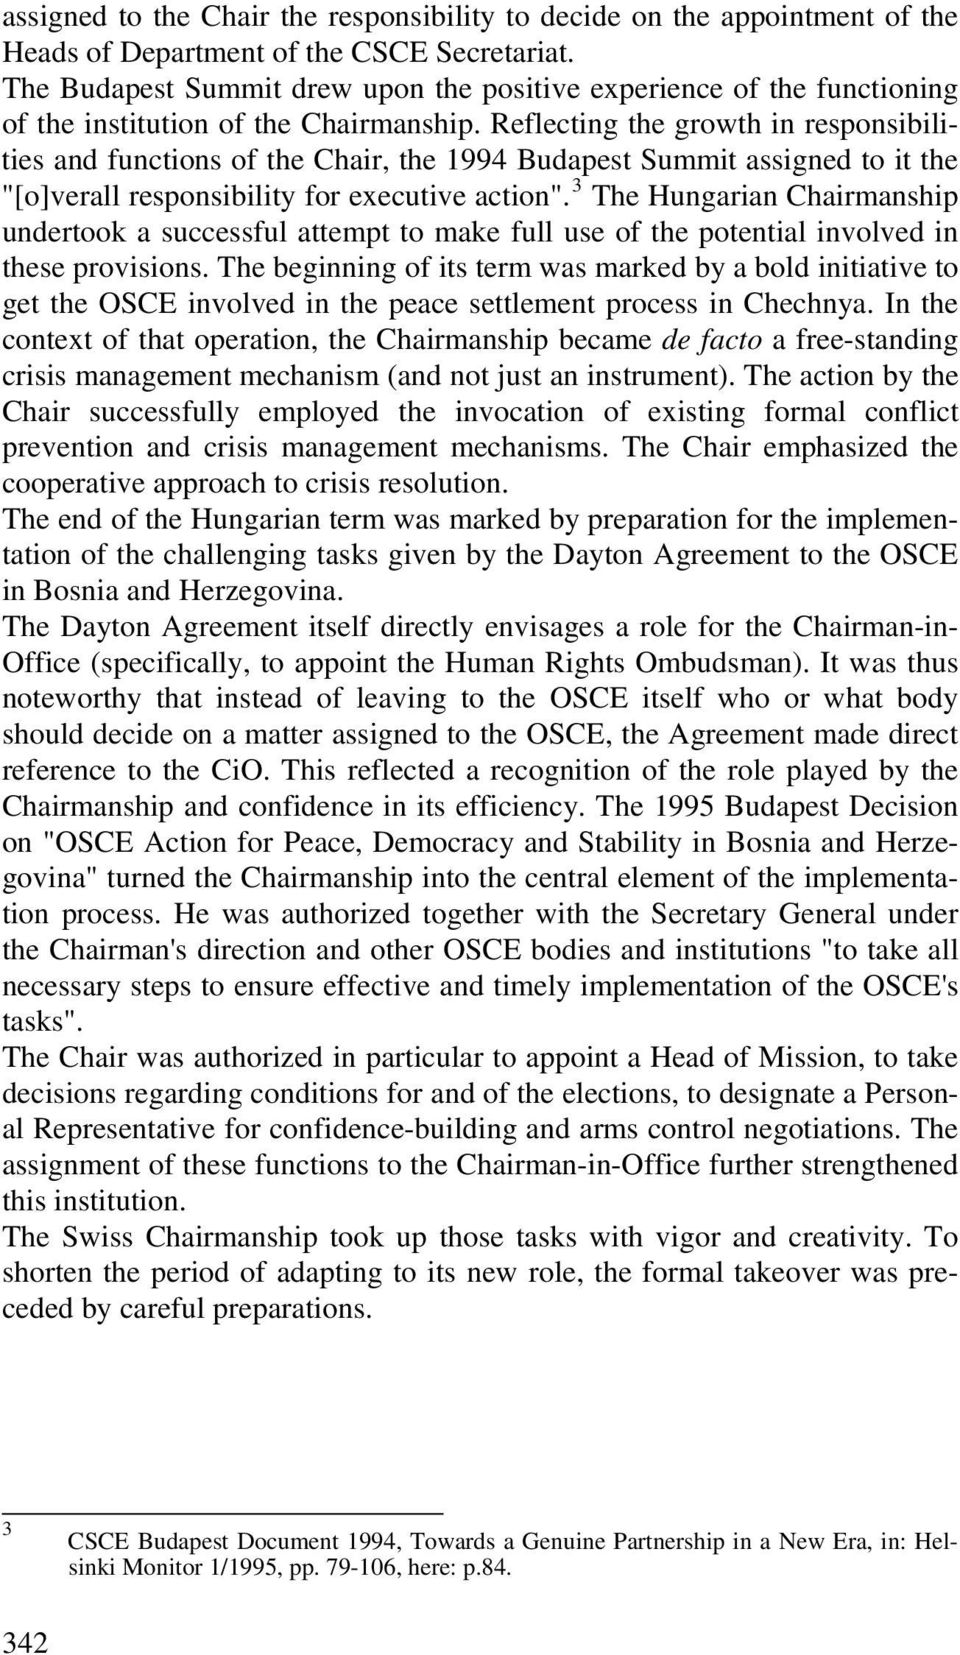 "Reflecting the growth in responsibilities and functions of the Chair, the 1994 Budapest Summit assigned to it the ""[o]verall responsibility for executive action""."